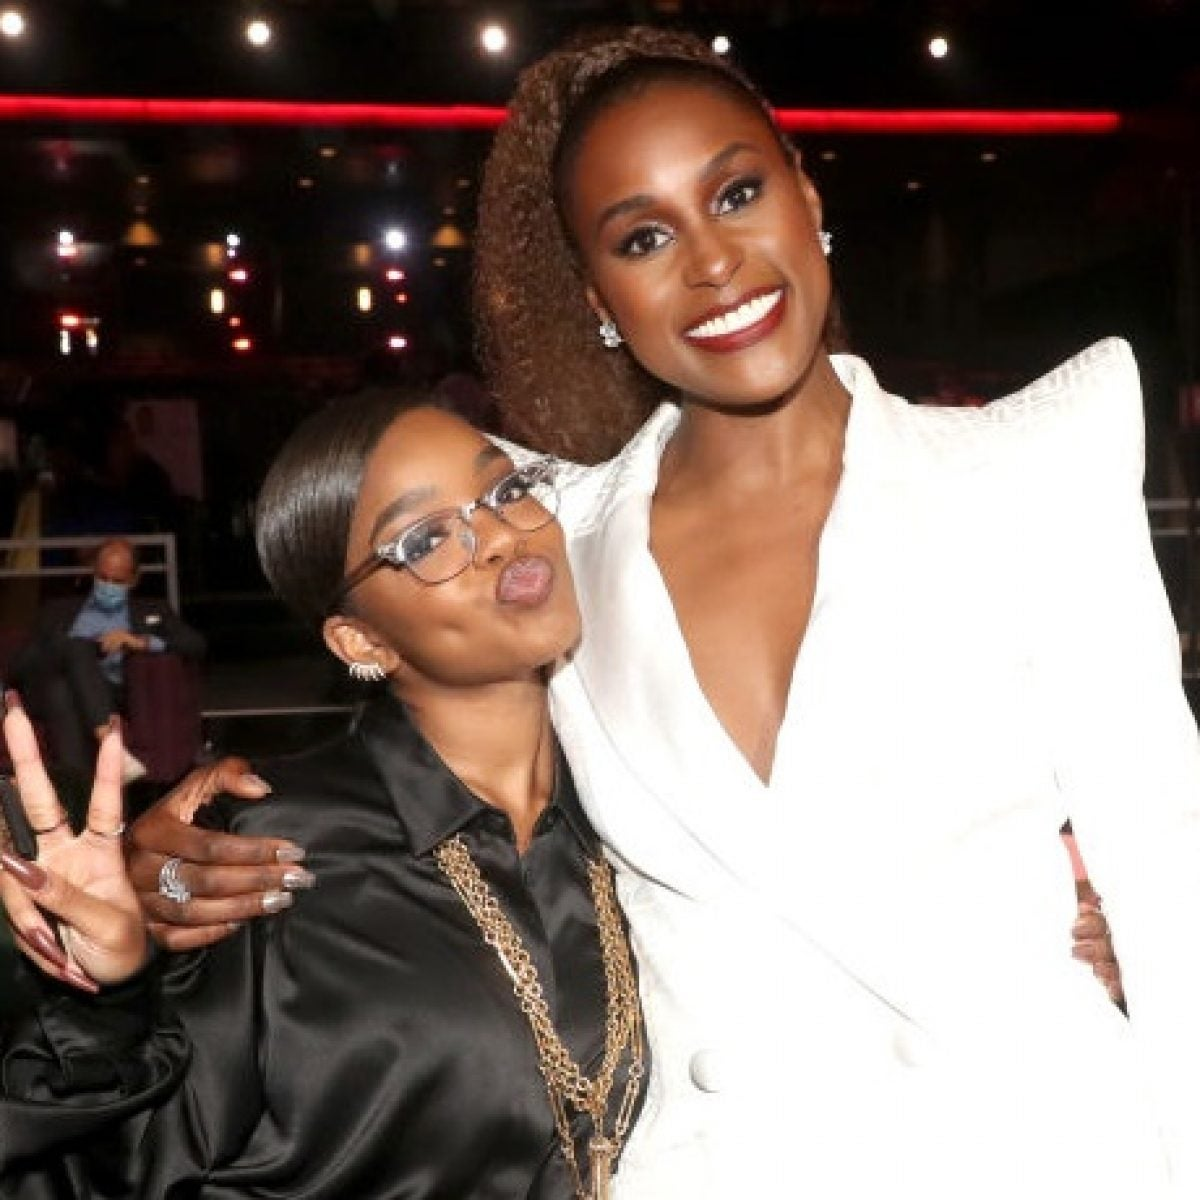 Marsai Martin Shares Her Love For Issa Rae On The BET Red Carpet: 'She's Truly Amazing'